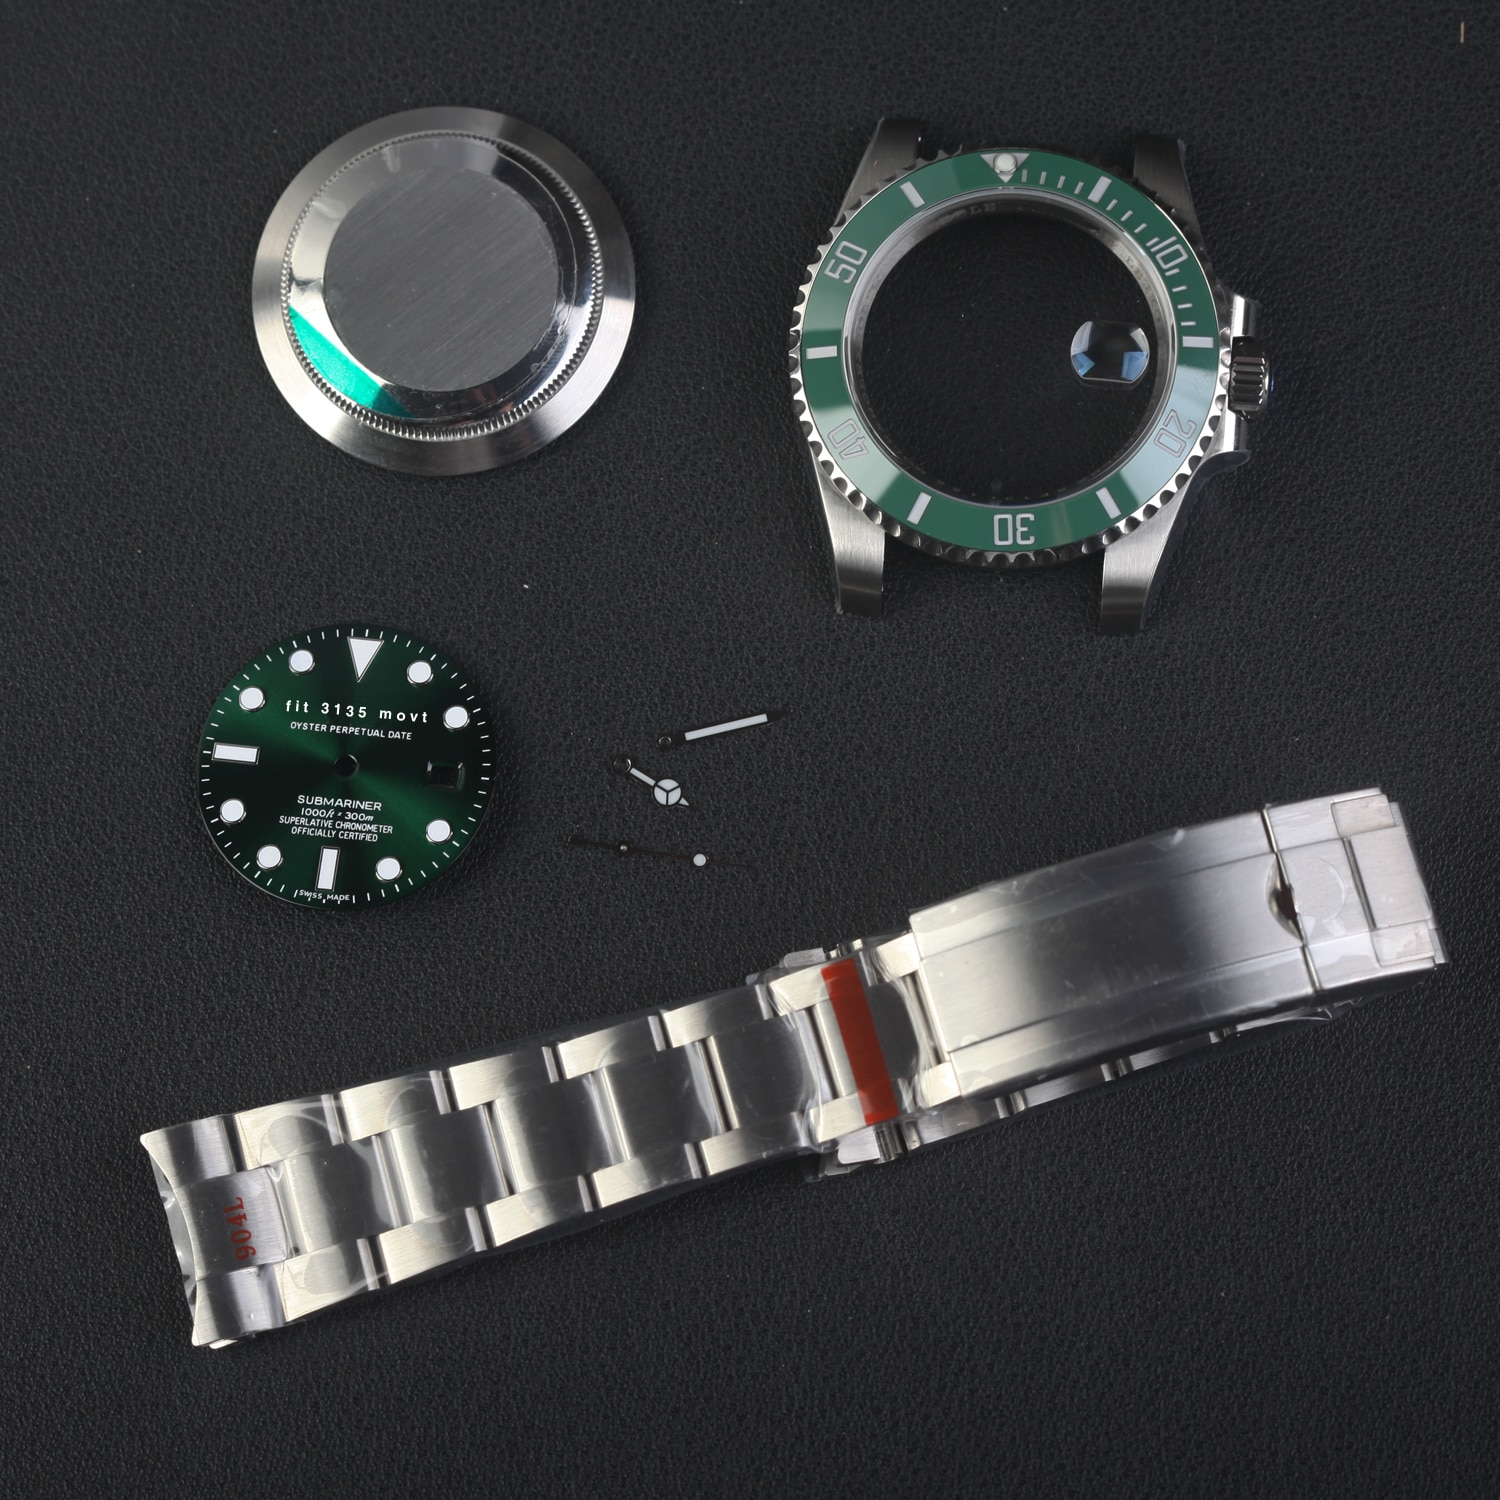 116610 submariner style watch parts 904l steel  fit 3135 movement